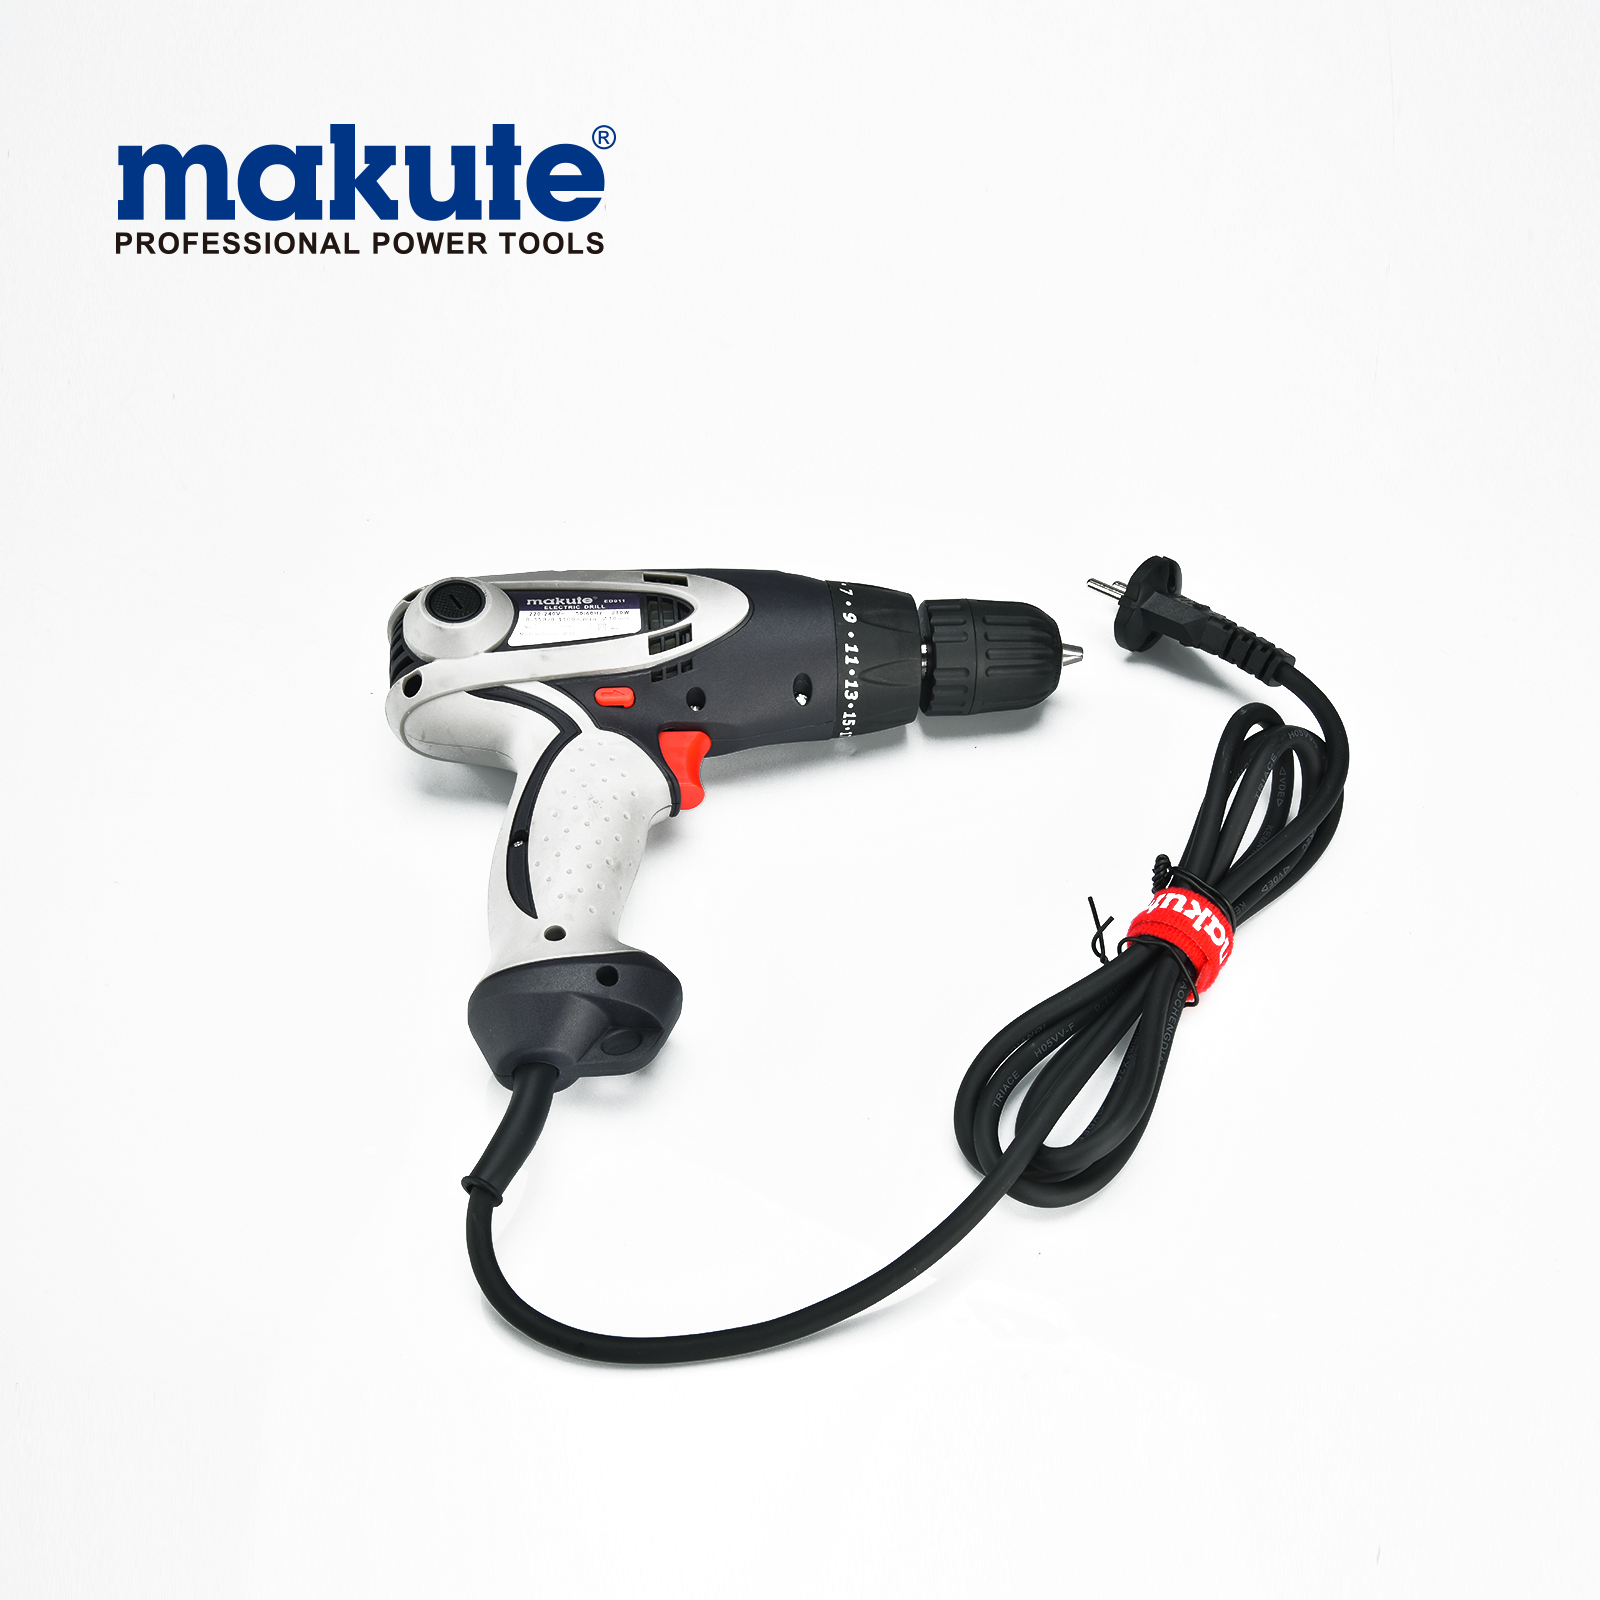 small hand electric drill manufacturers